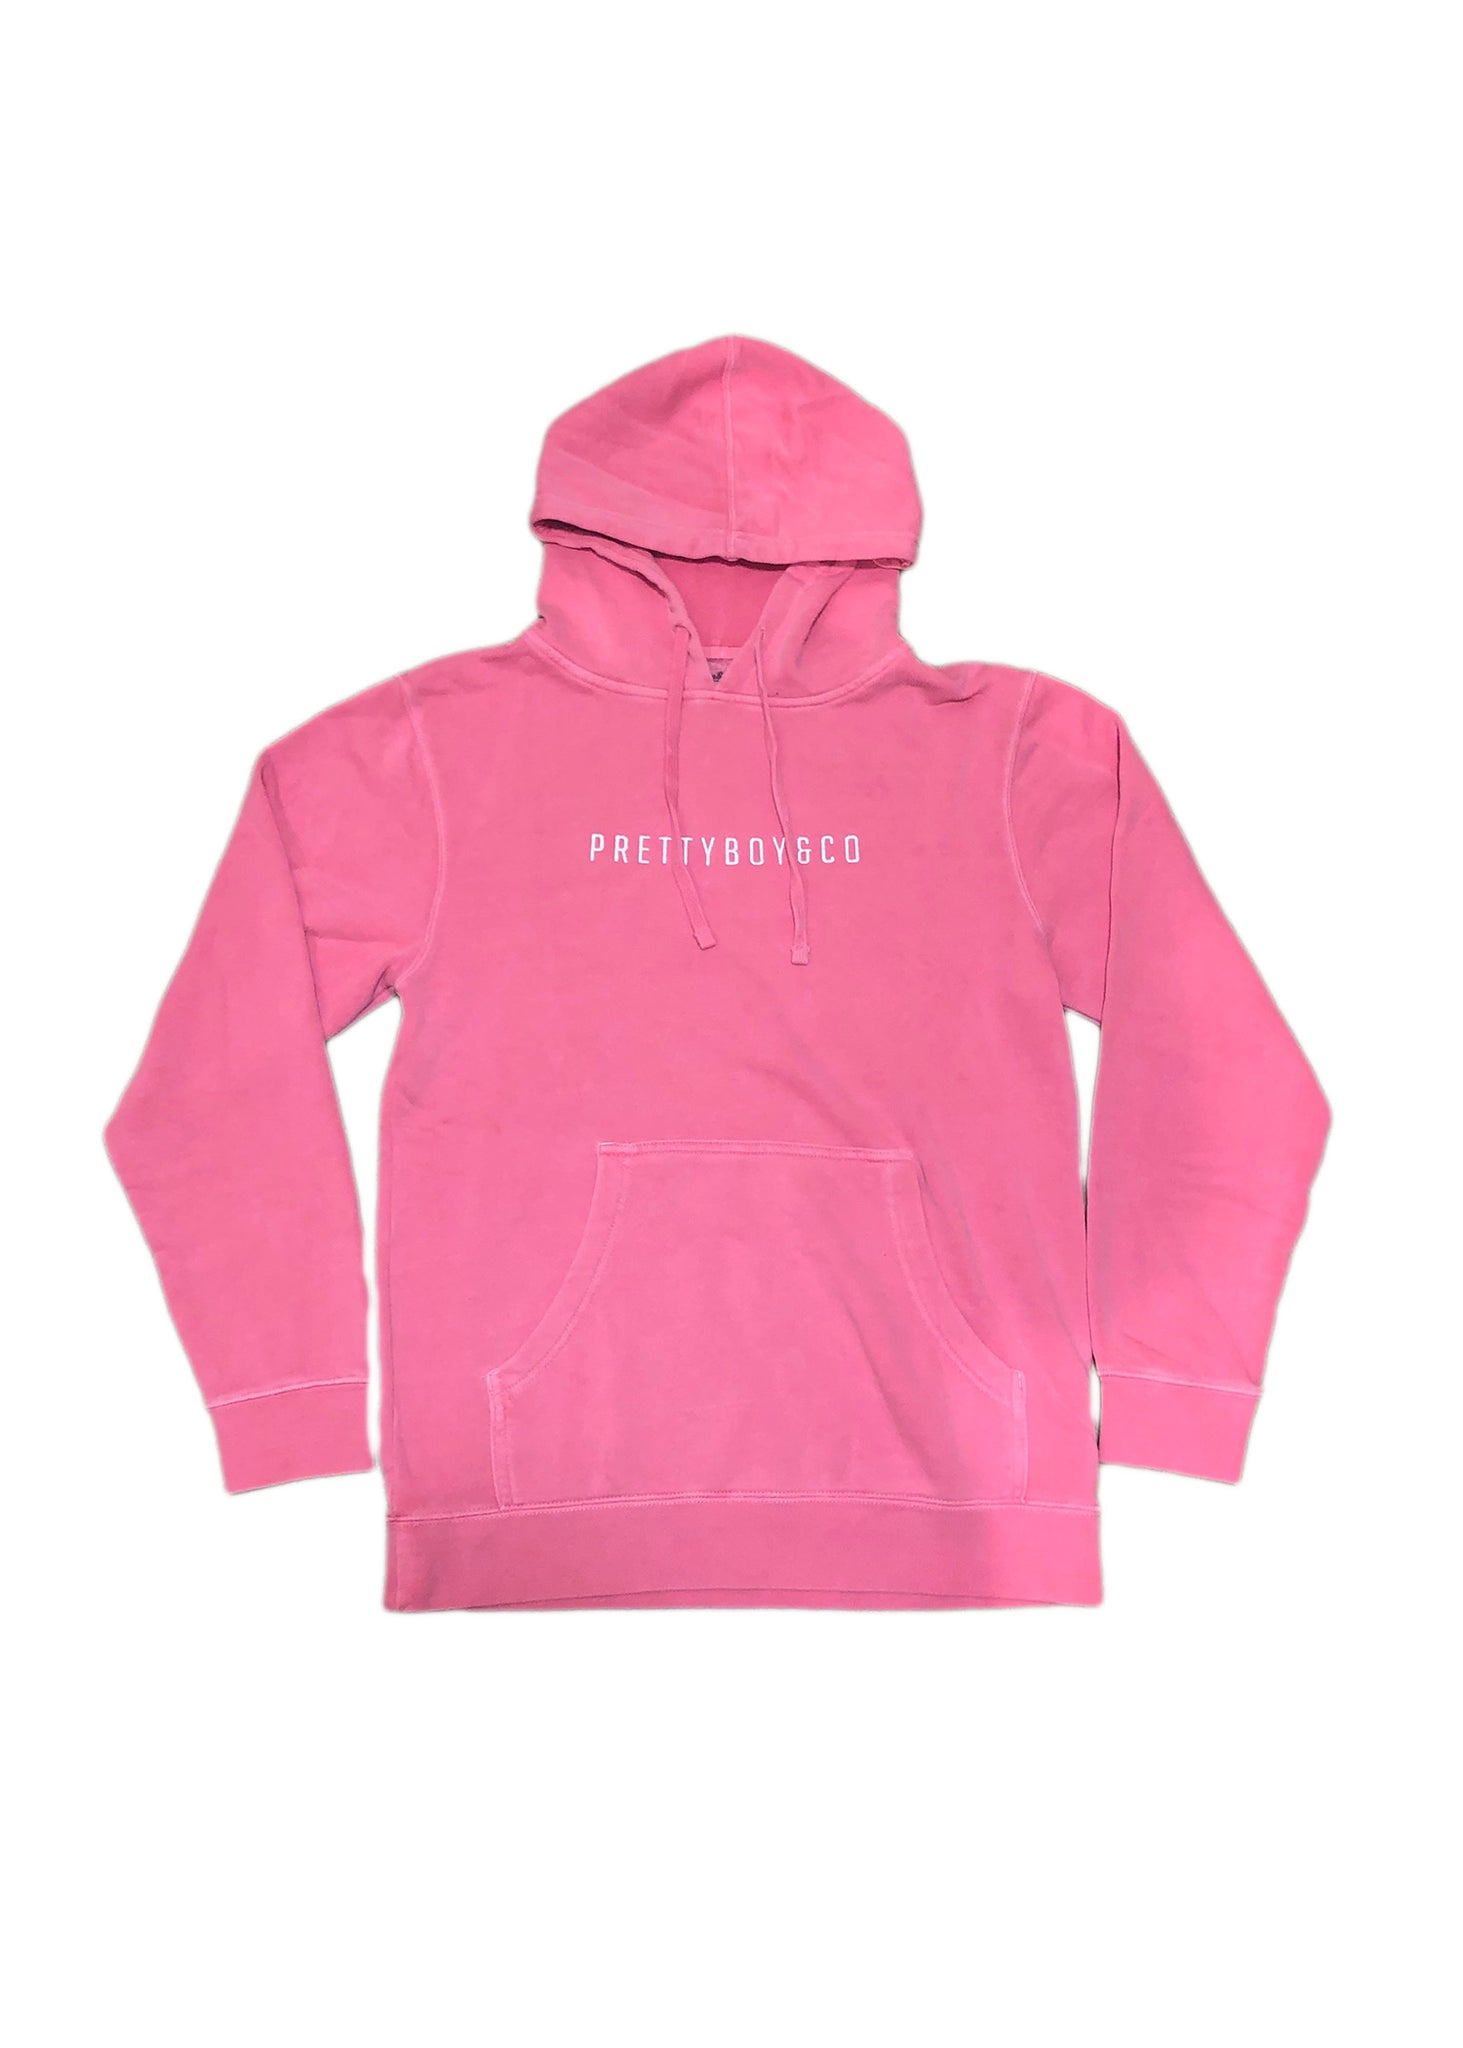 Pink Block Embroidered Hooded Sweatshirt (Limited)